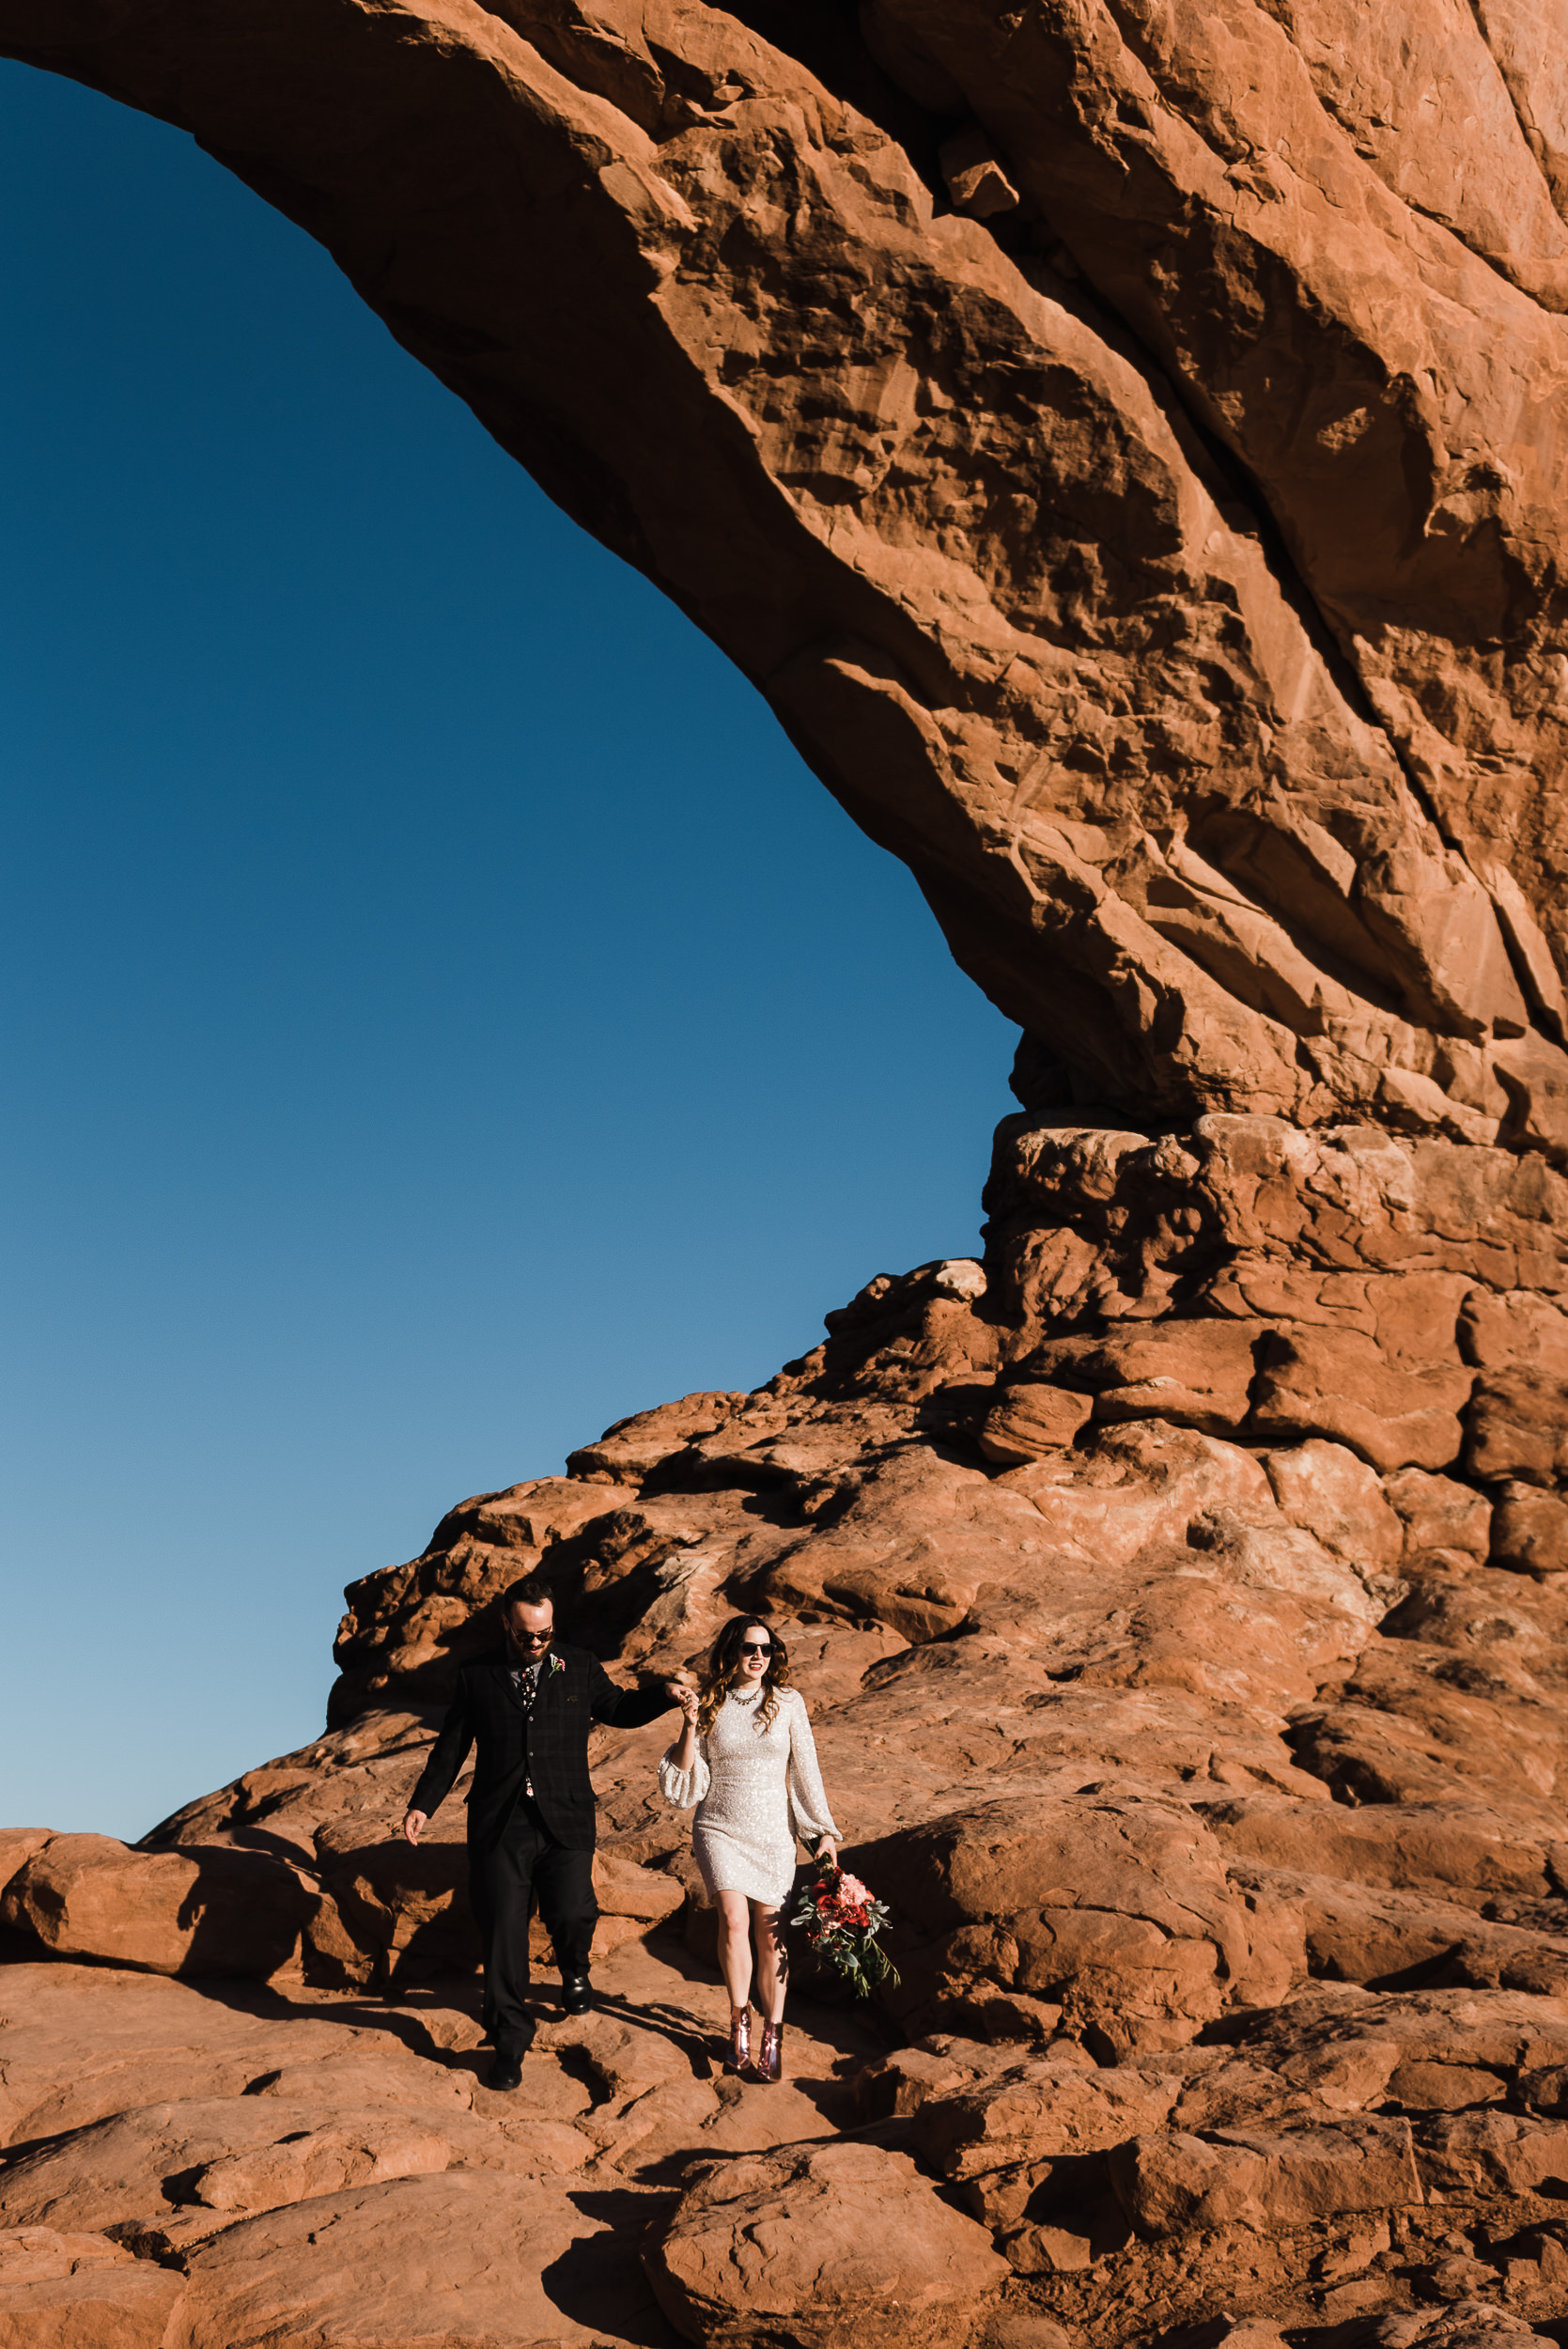 An elopement couple walk down away from a dramatic arch in Arches National Park in Utah. The bride holds her husband's hand over her shoulder, leading the way, bouquet in the opposite hand. They're both wearing sunglasses. The dramatic arch reaches very high above them.